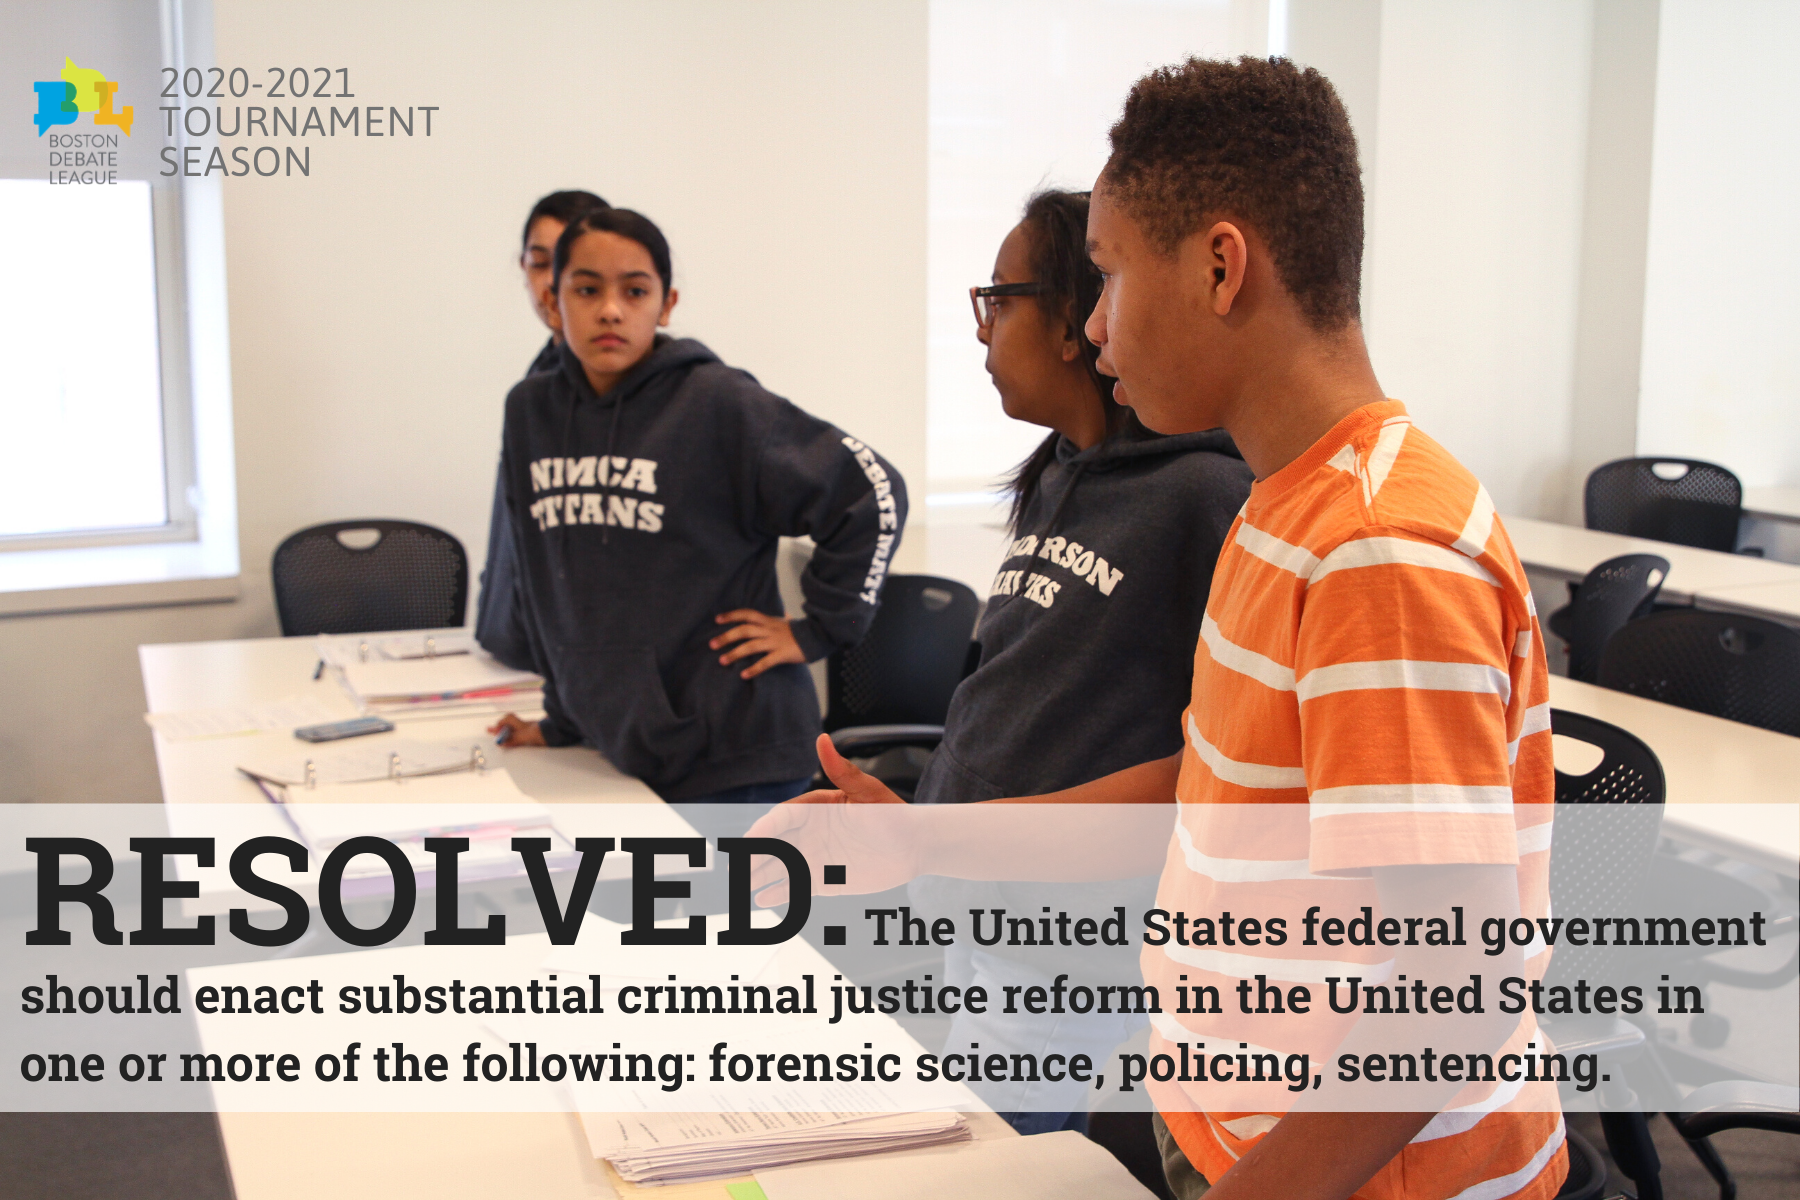 Resolved: The United States Federal Government should enact substantial criminal justice reform in the United States in one or more of the following: forensic science, policing, sentencing.